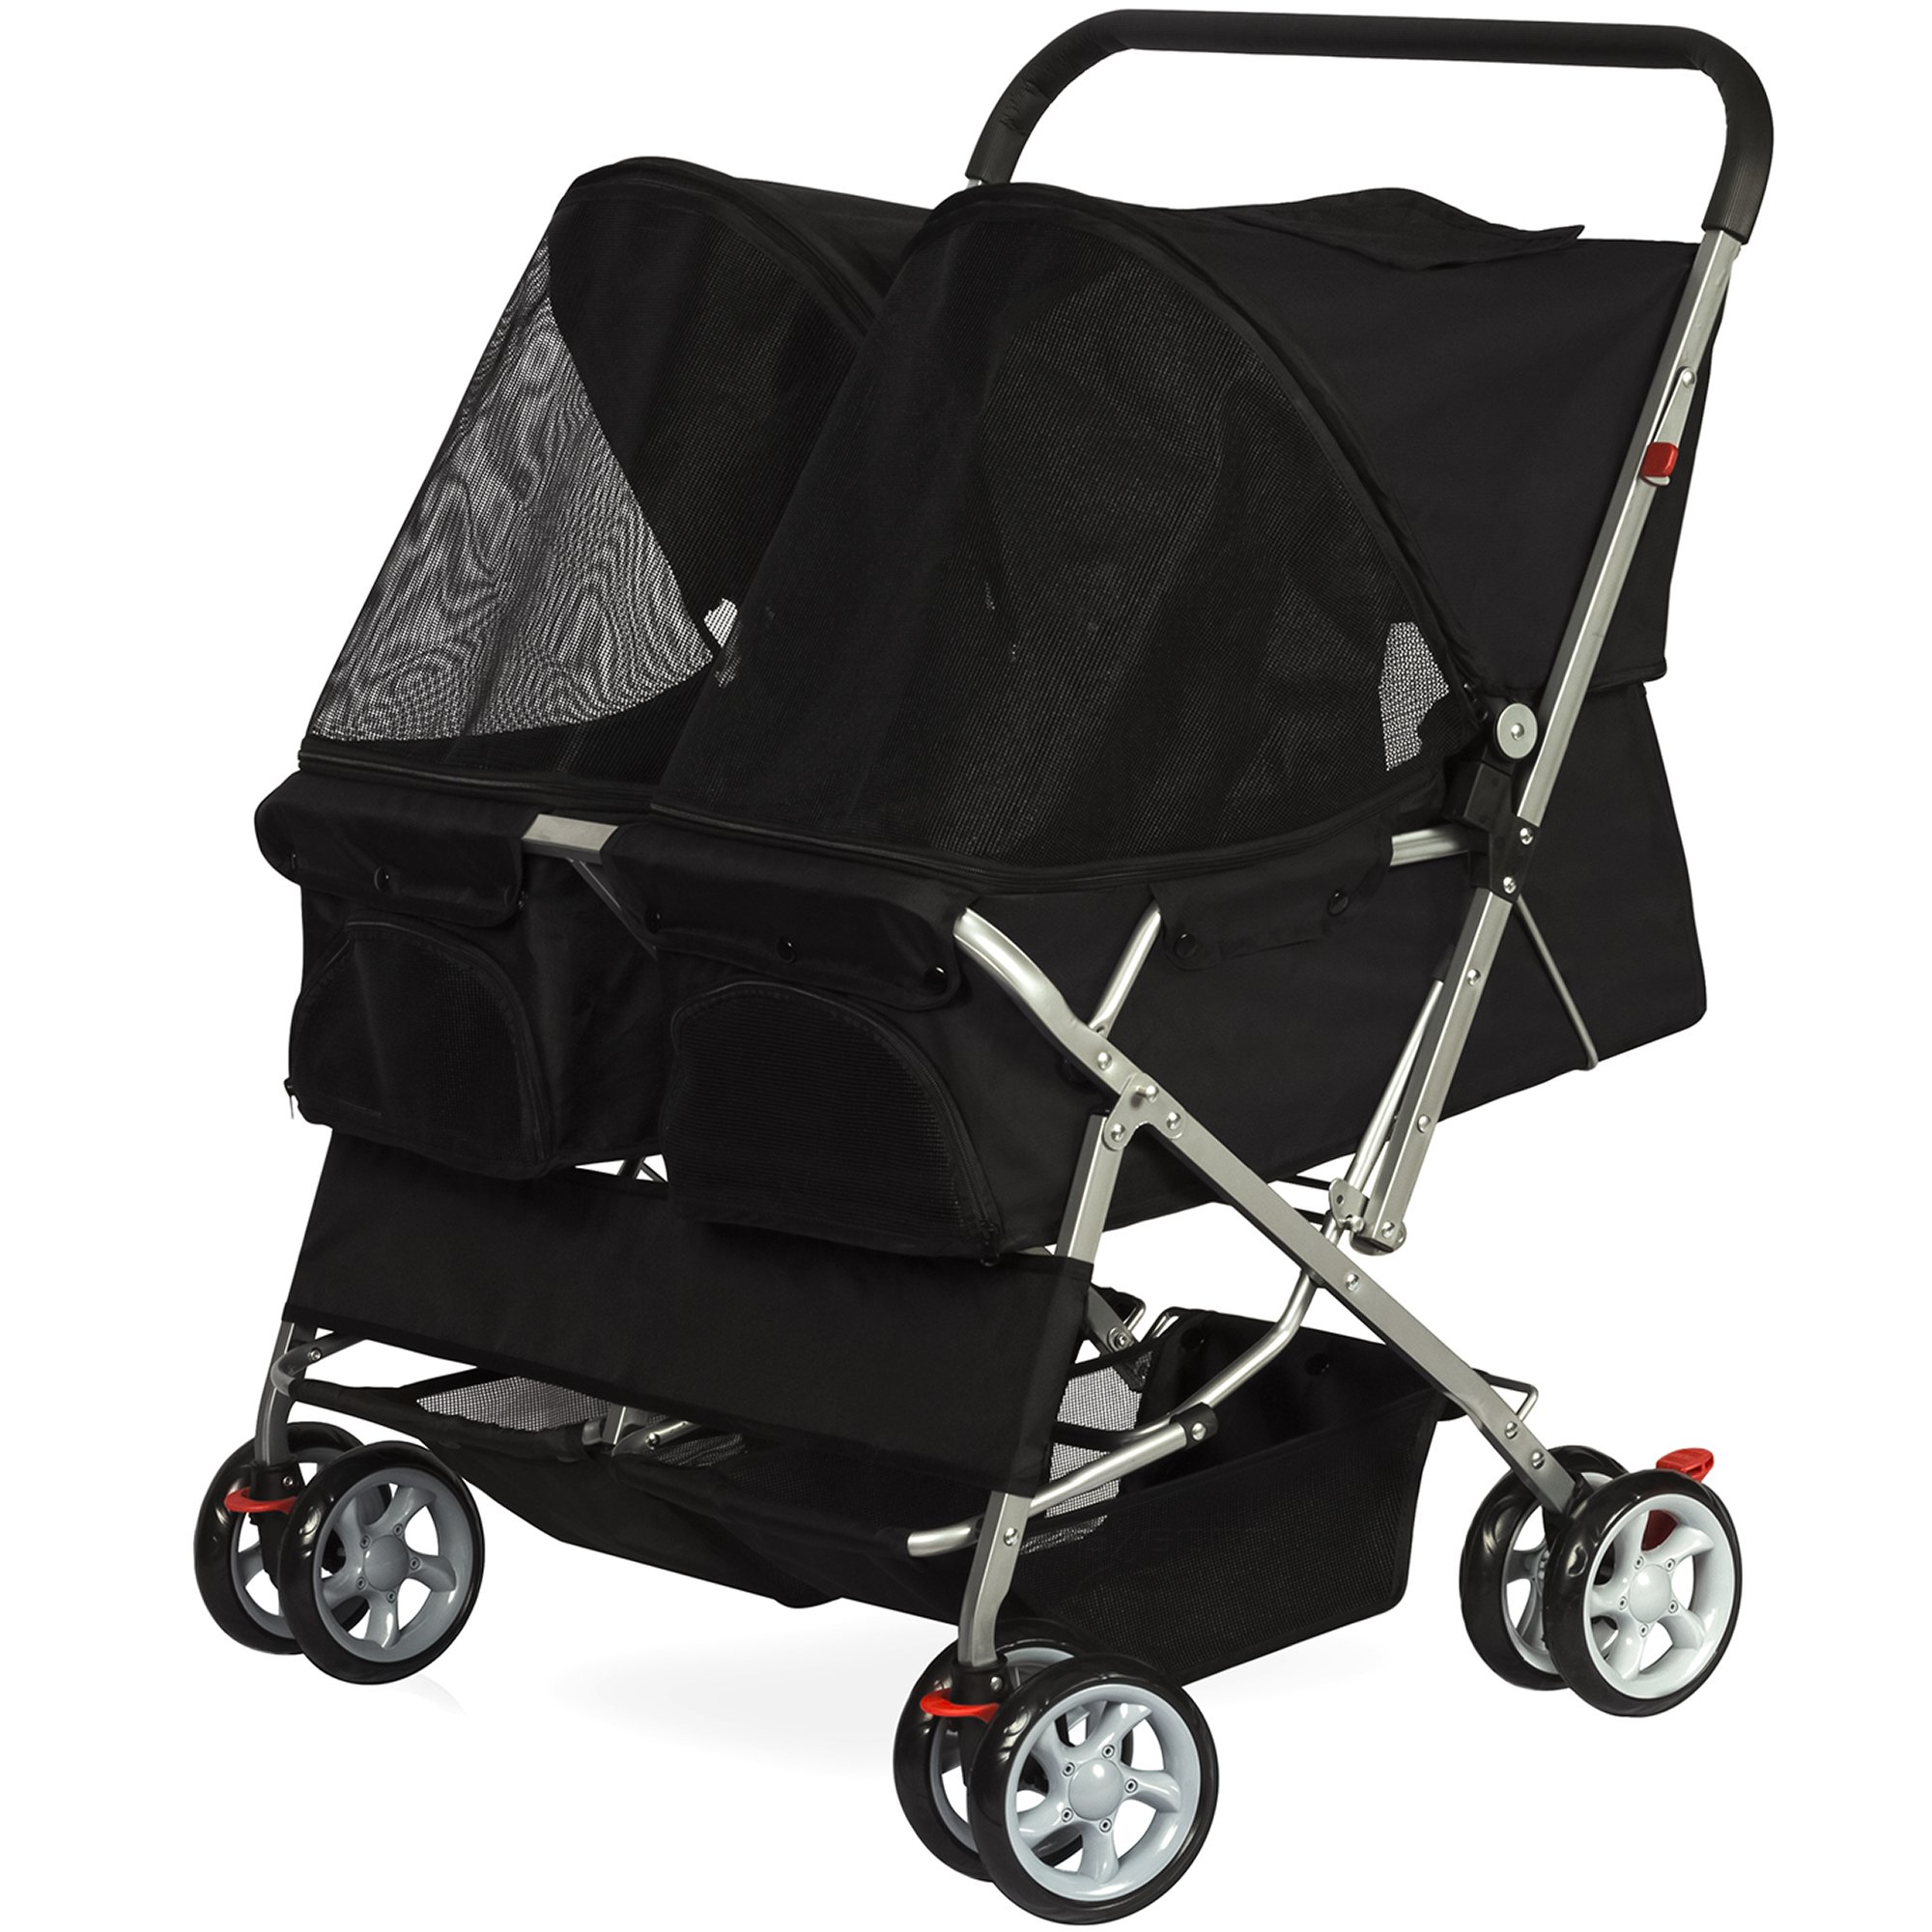 Paws & Pals Twin Double Folding Black Pet Stroller in 2019